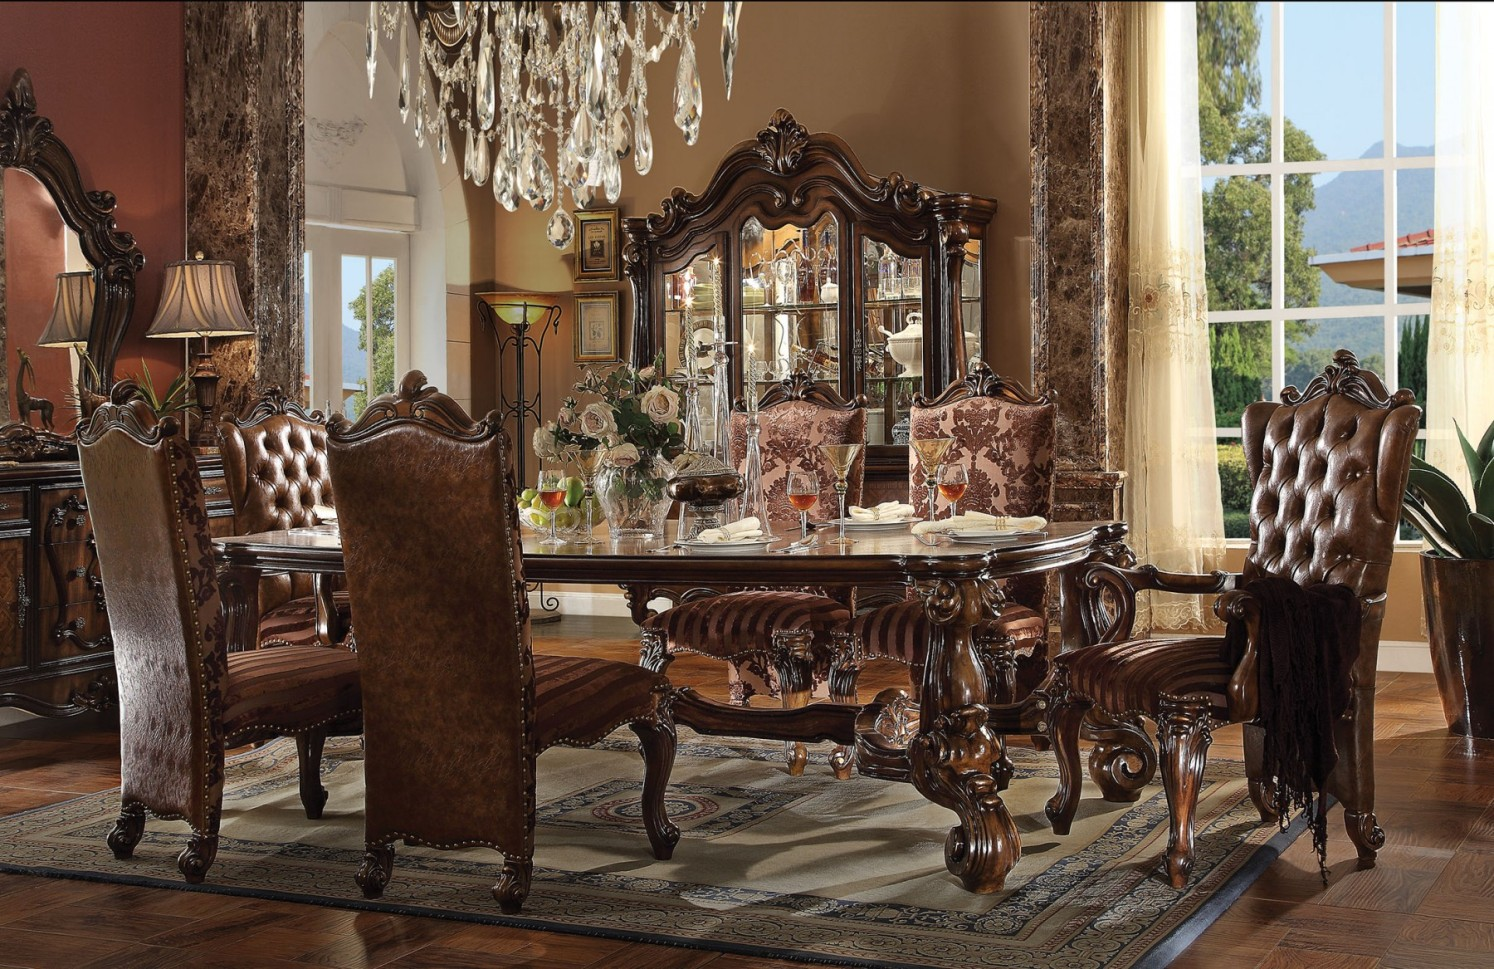 Formal dining room sets how elegance is made possible for Dining room sets